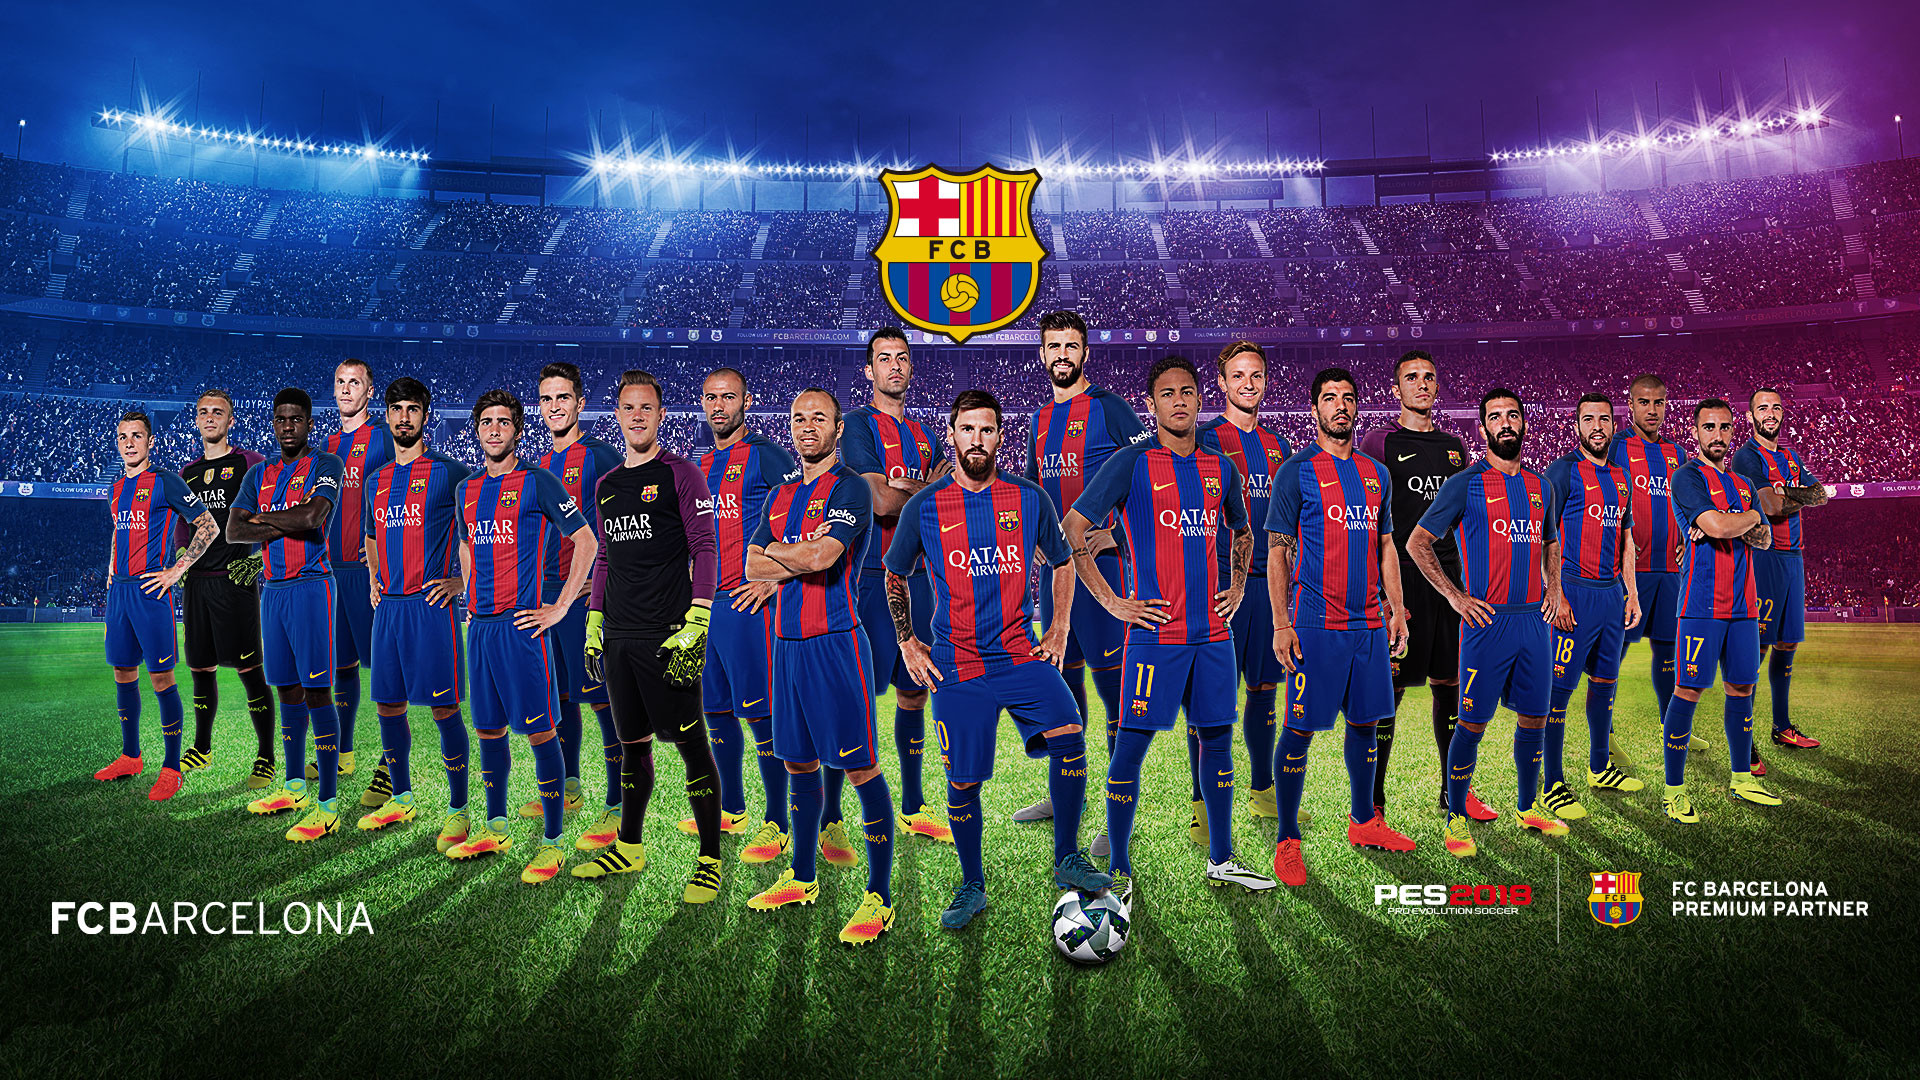 … fc barcelona wallpaper 2018 image gallery hcpr …